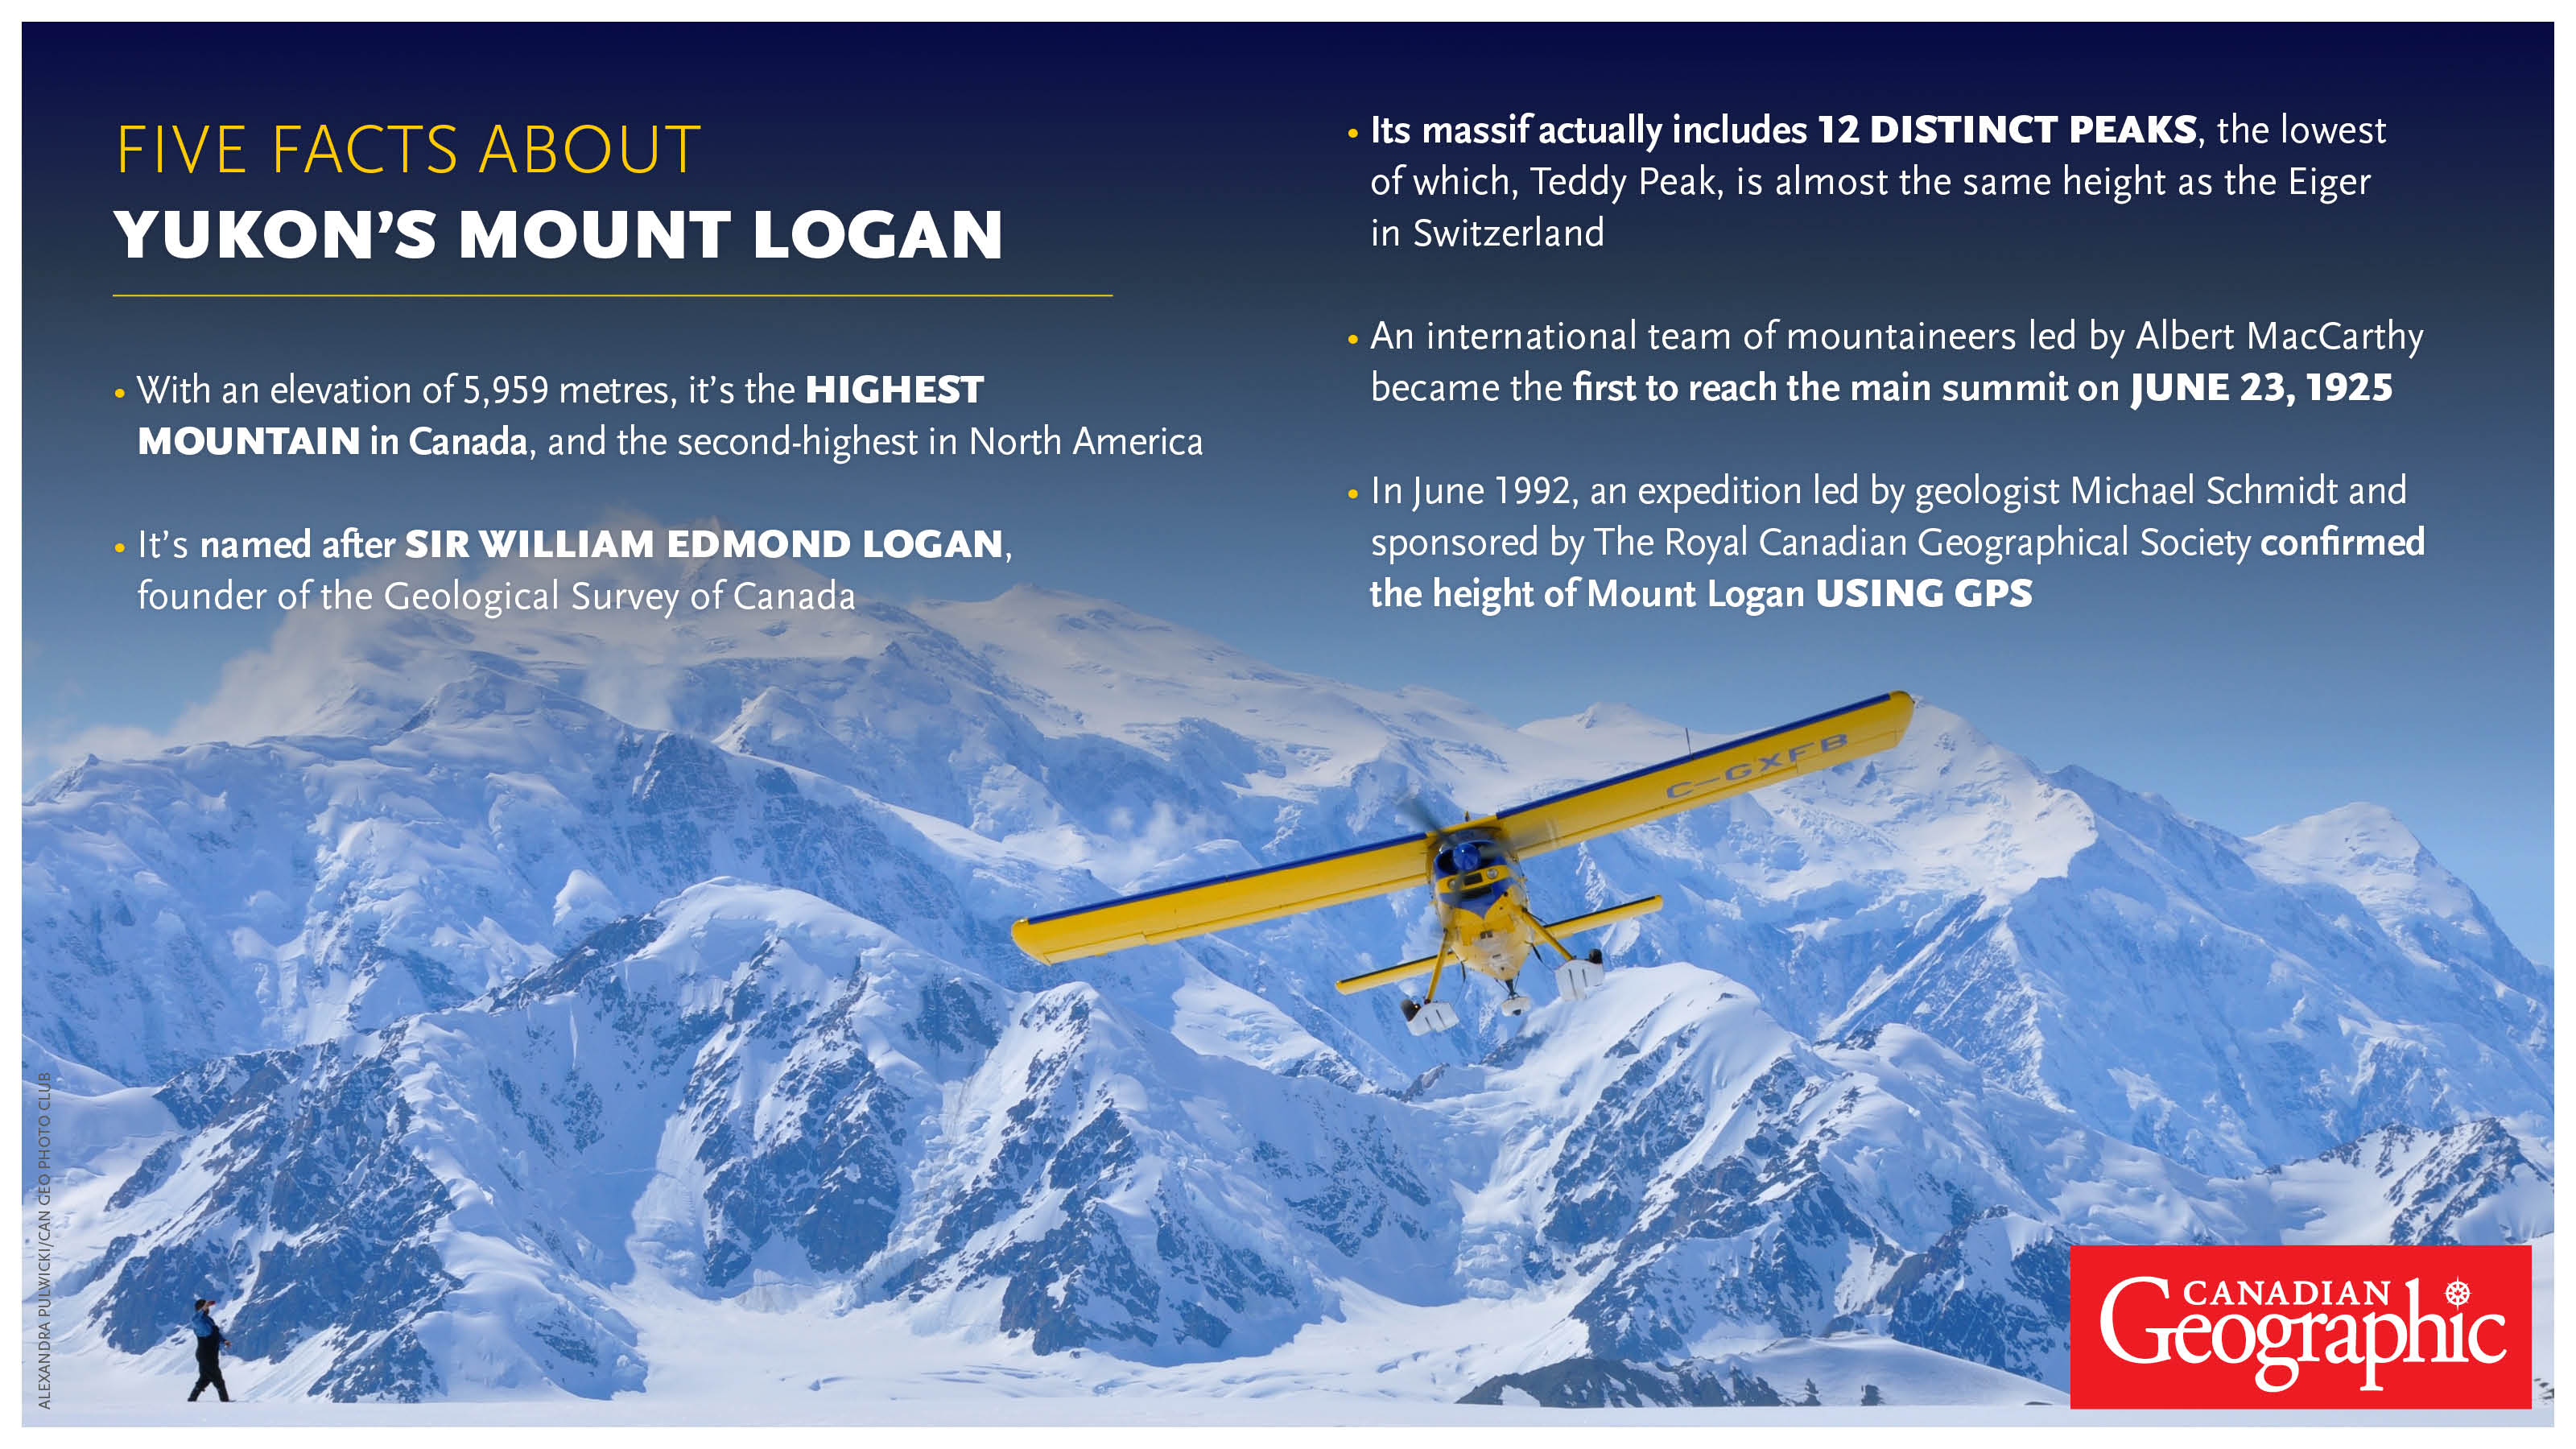 Facts about Mount Logan